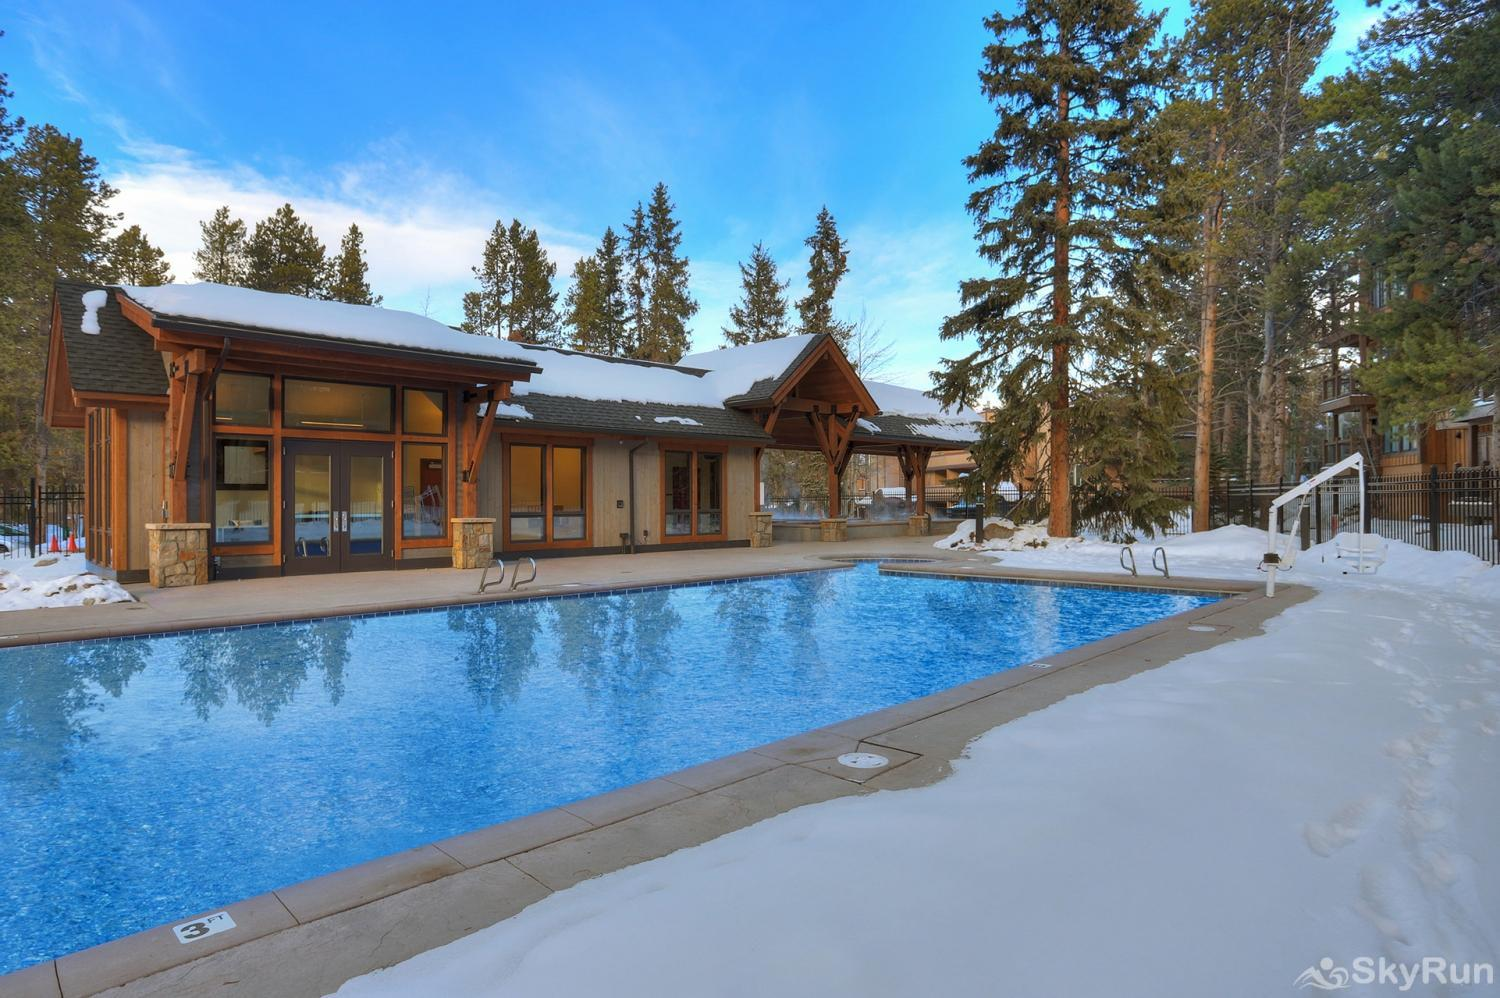 Lances West 7 Relax and unwind in the outdoor heated pool & hot tubs